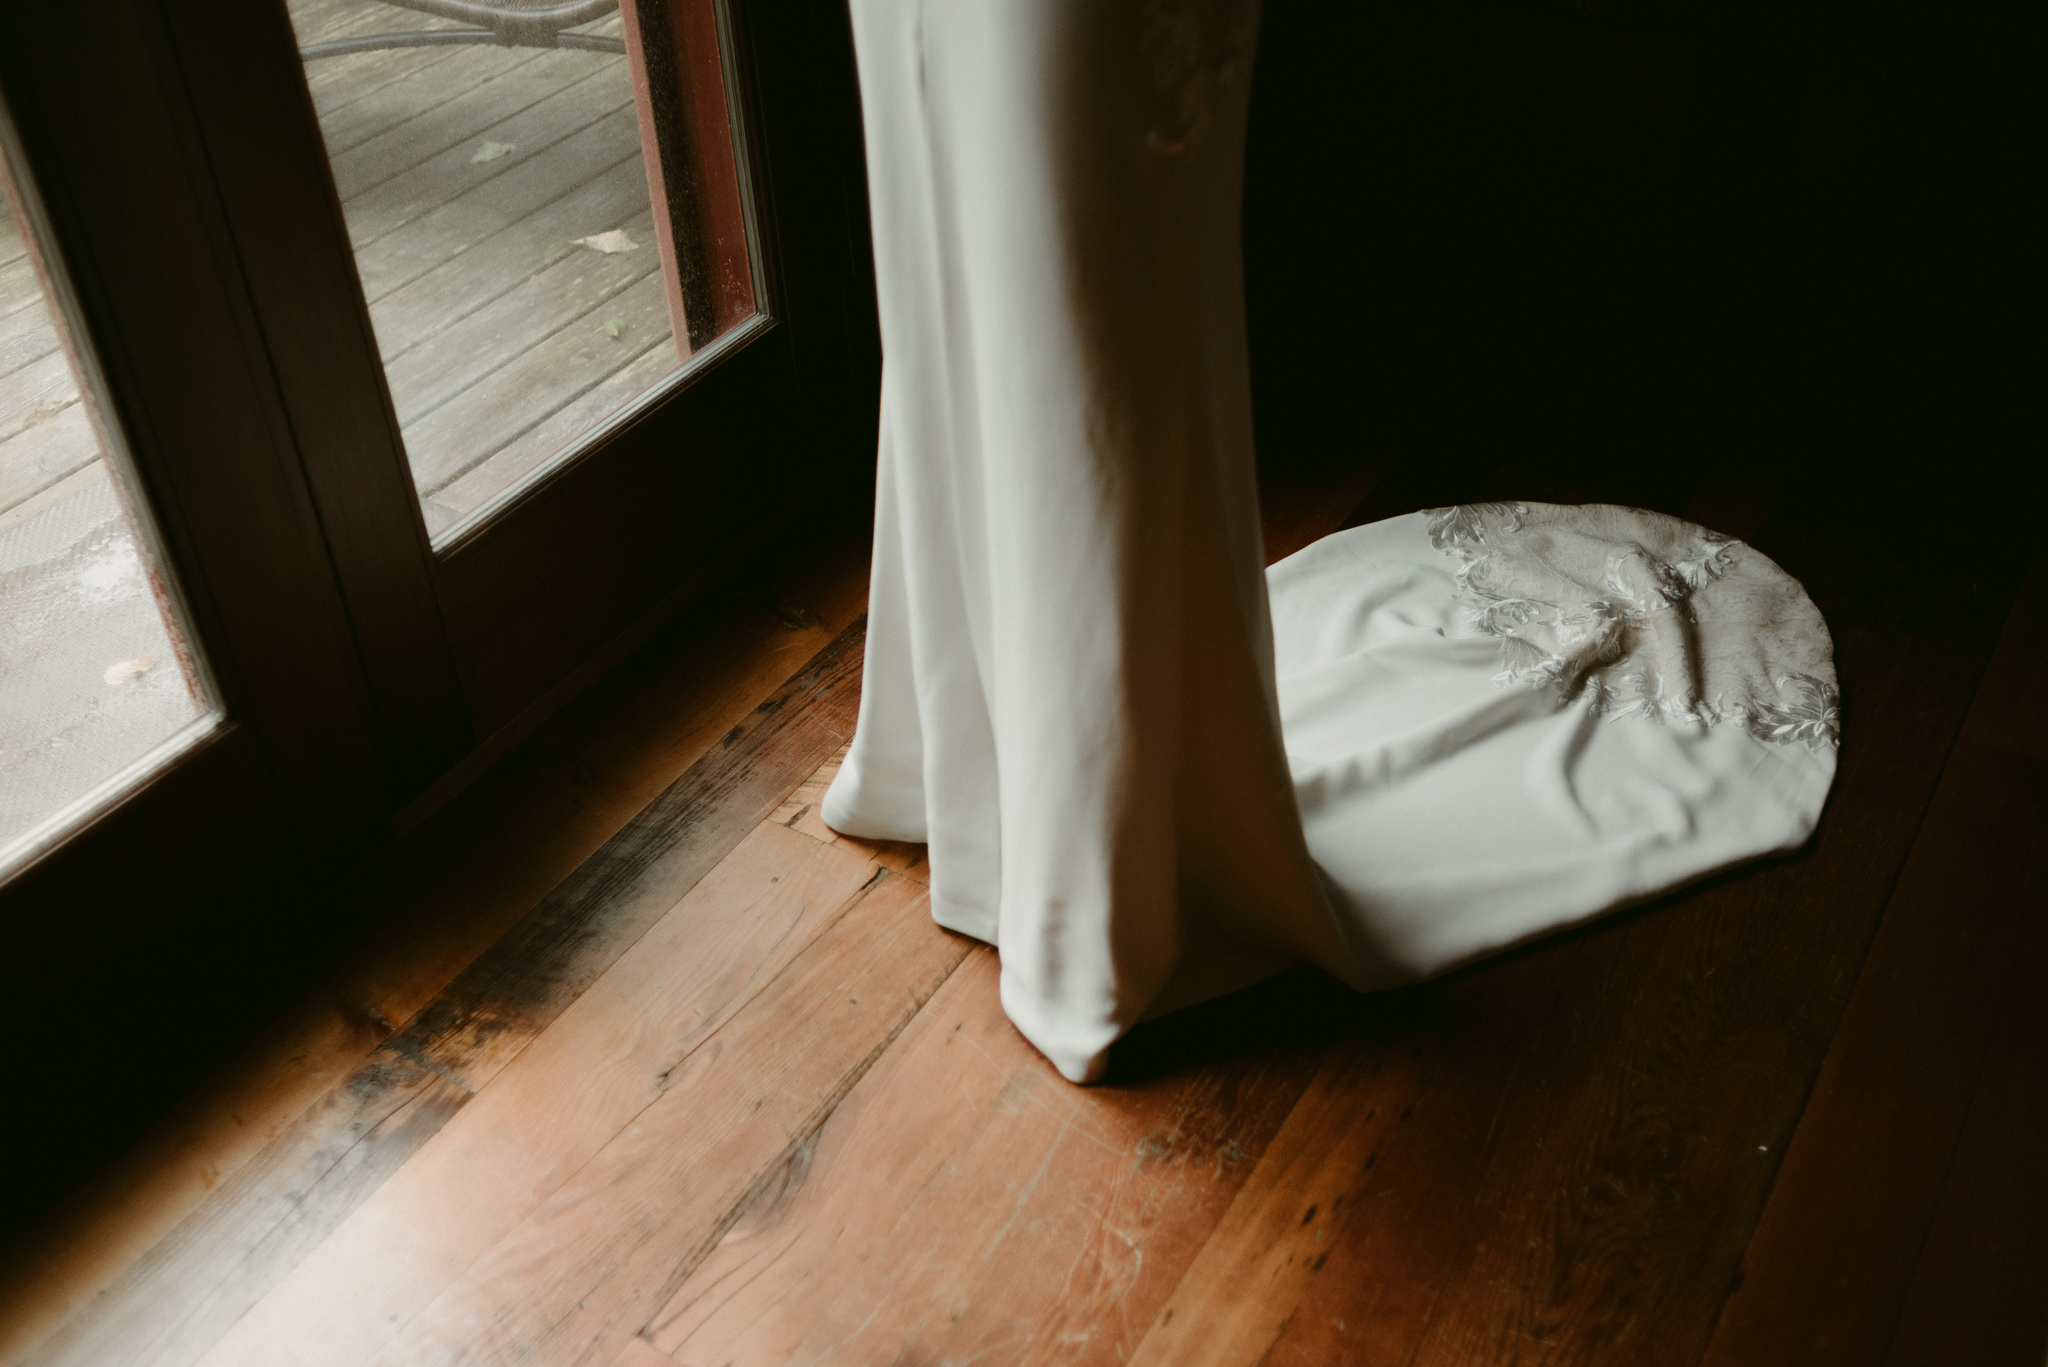 Bride wedding dress train on wood floor by door